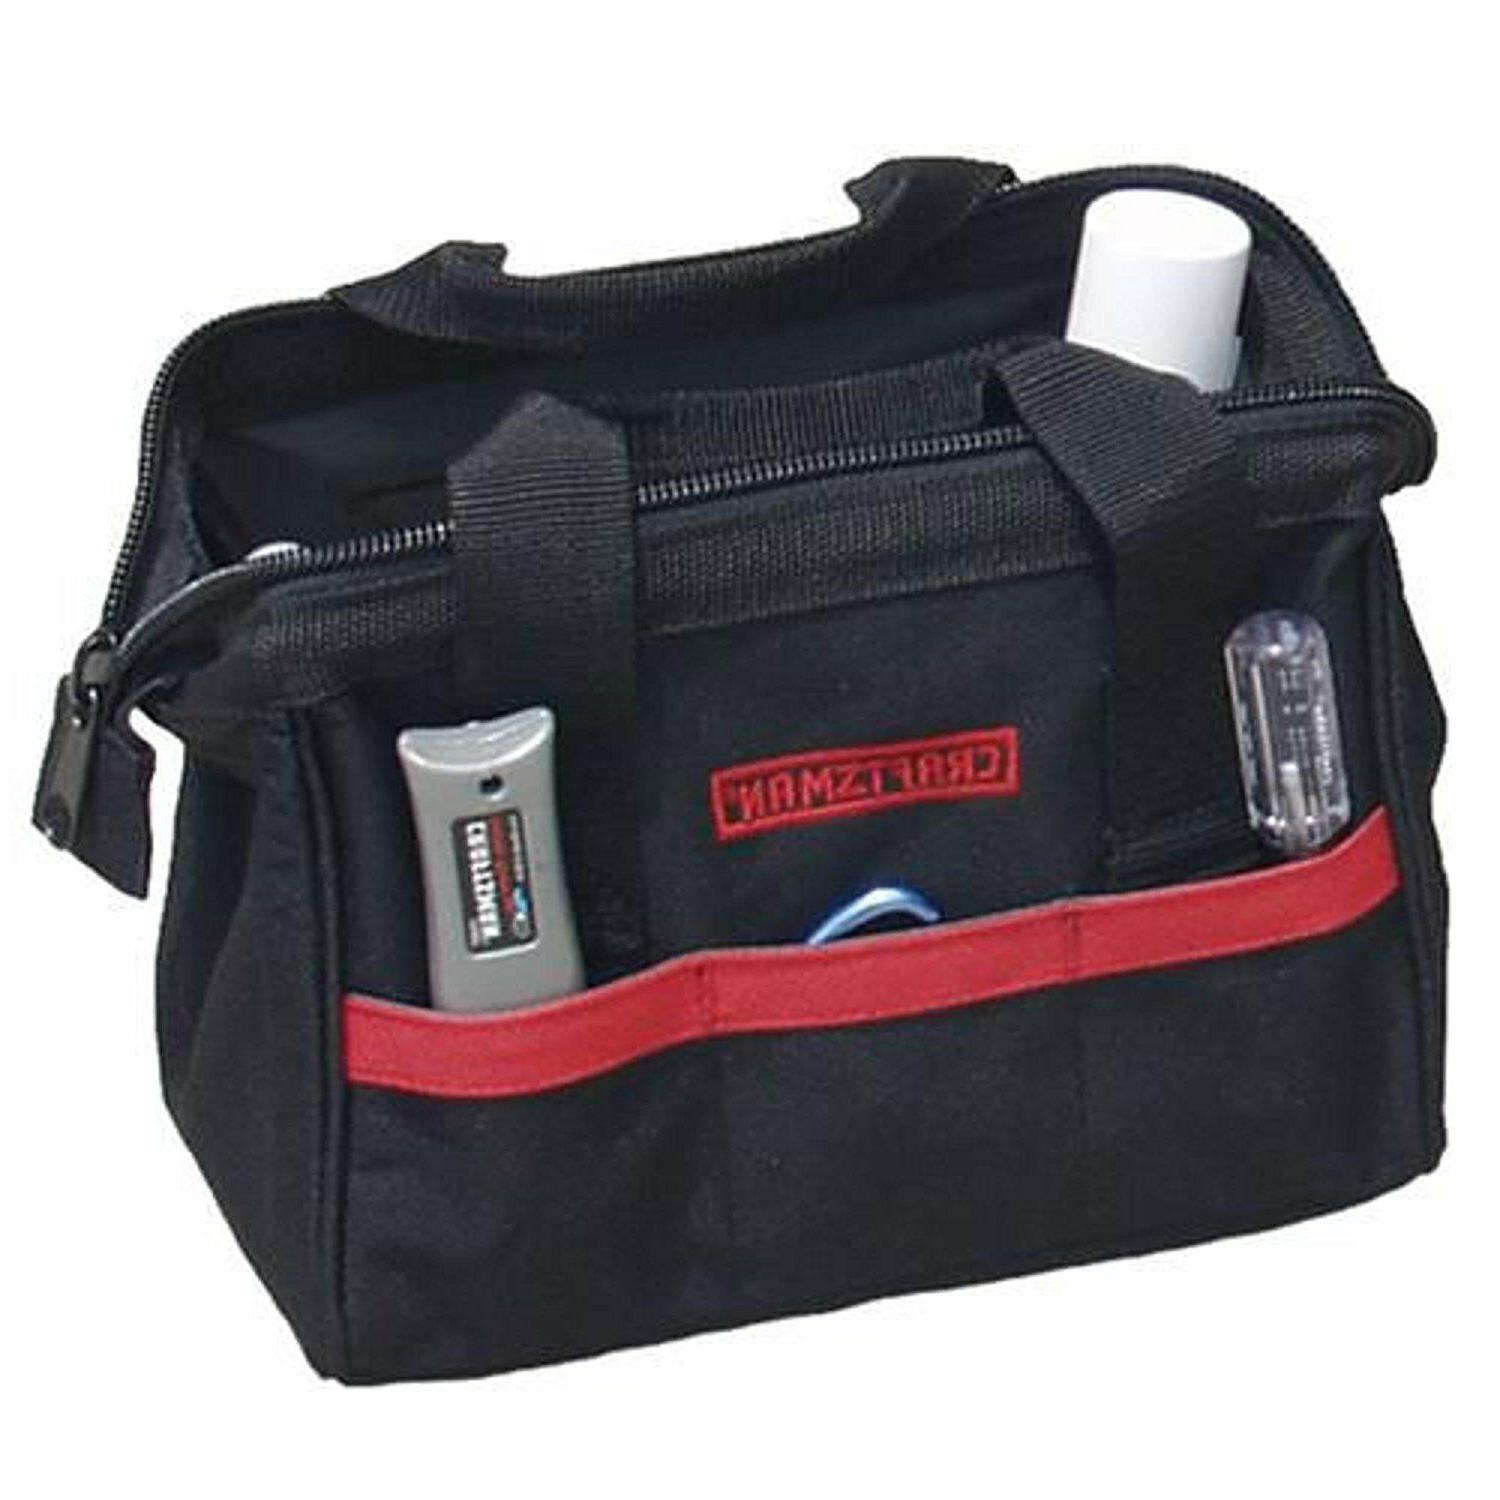 Craftsman 2-PC Bag Set 940558 2 bags 10 and inches